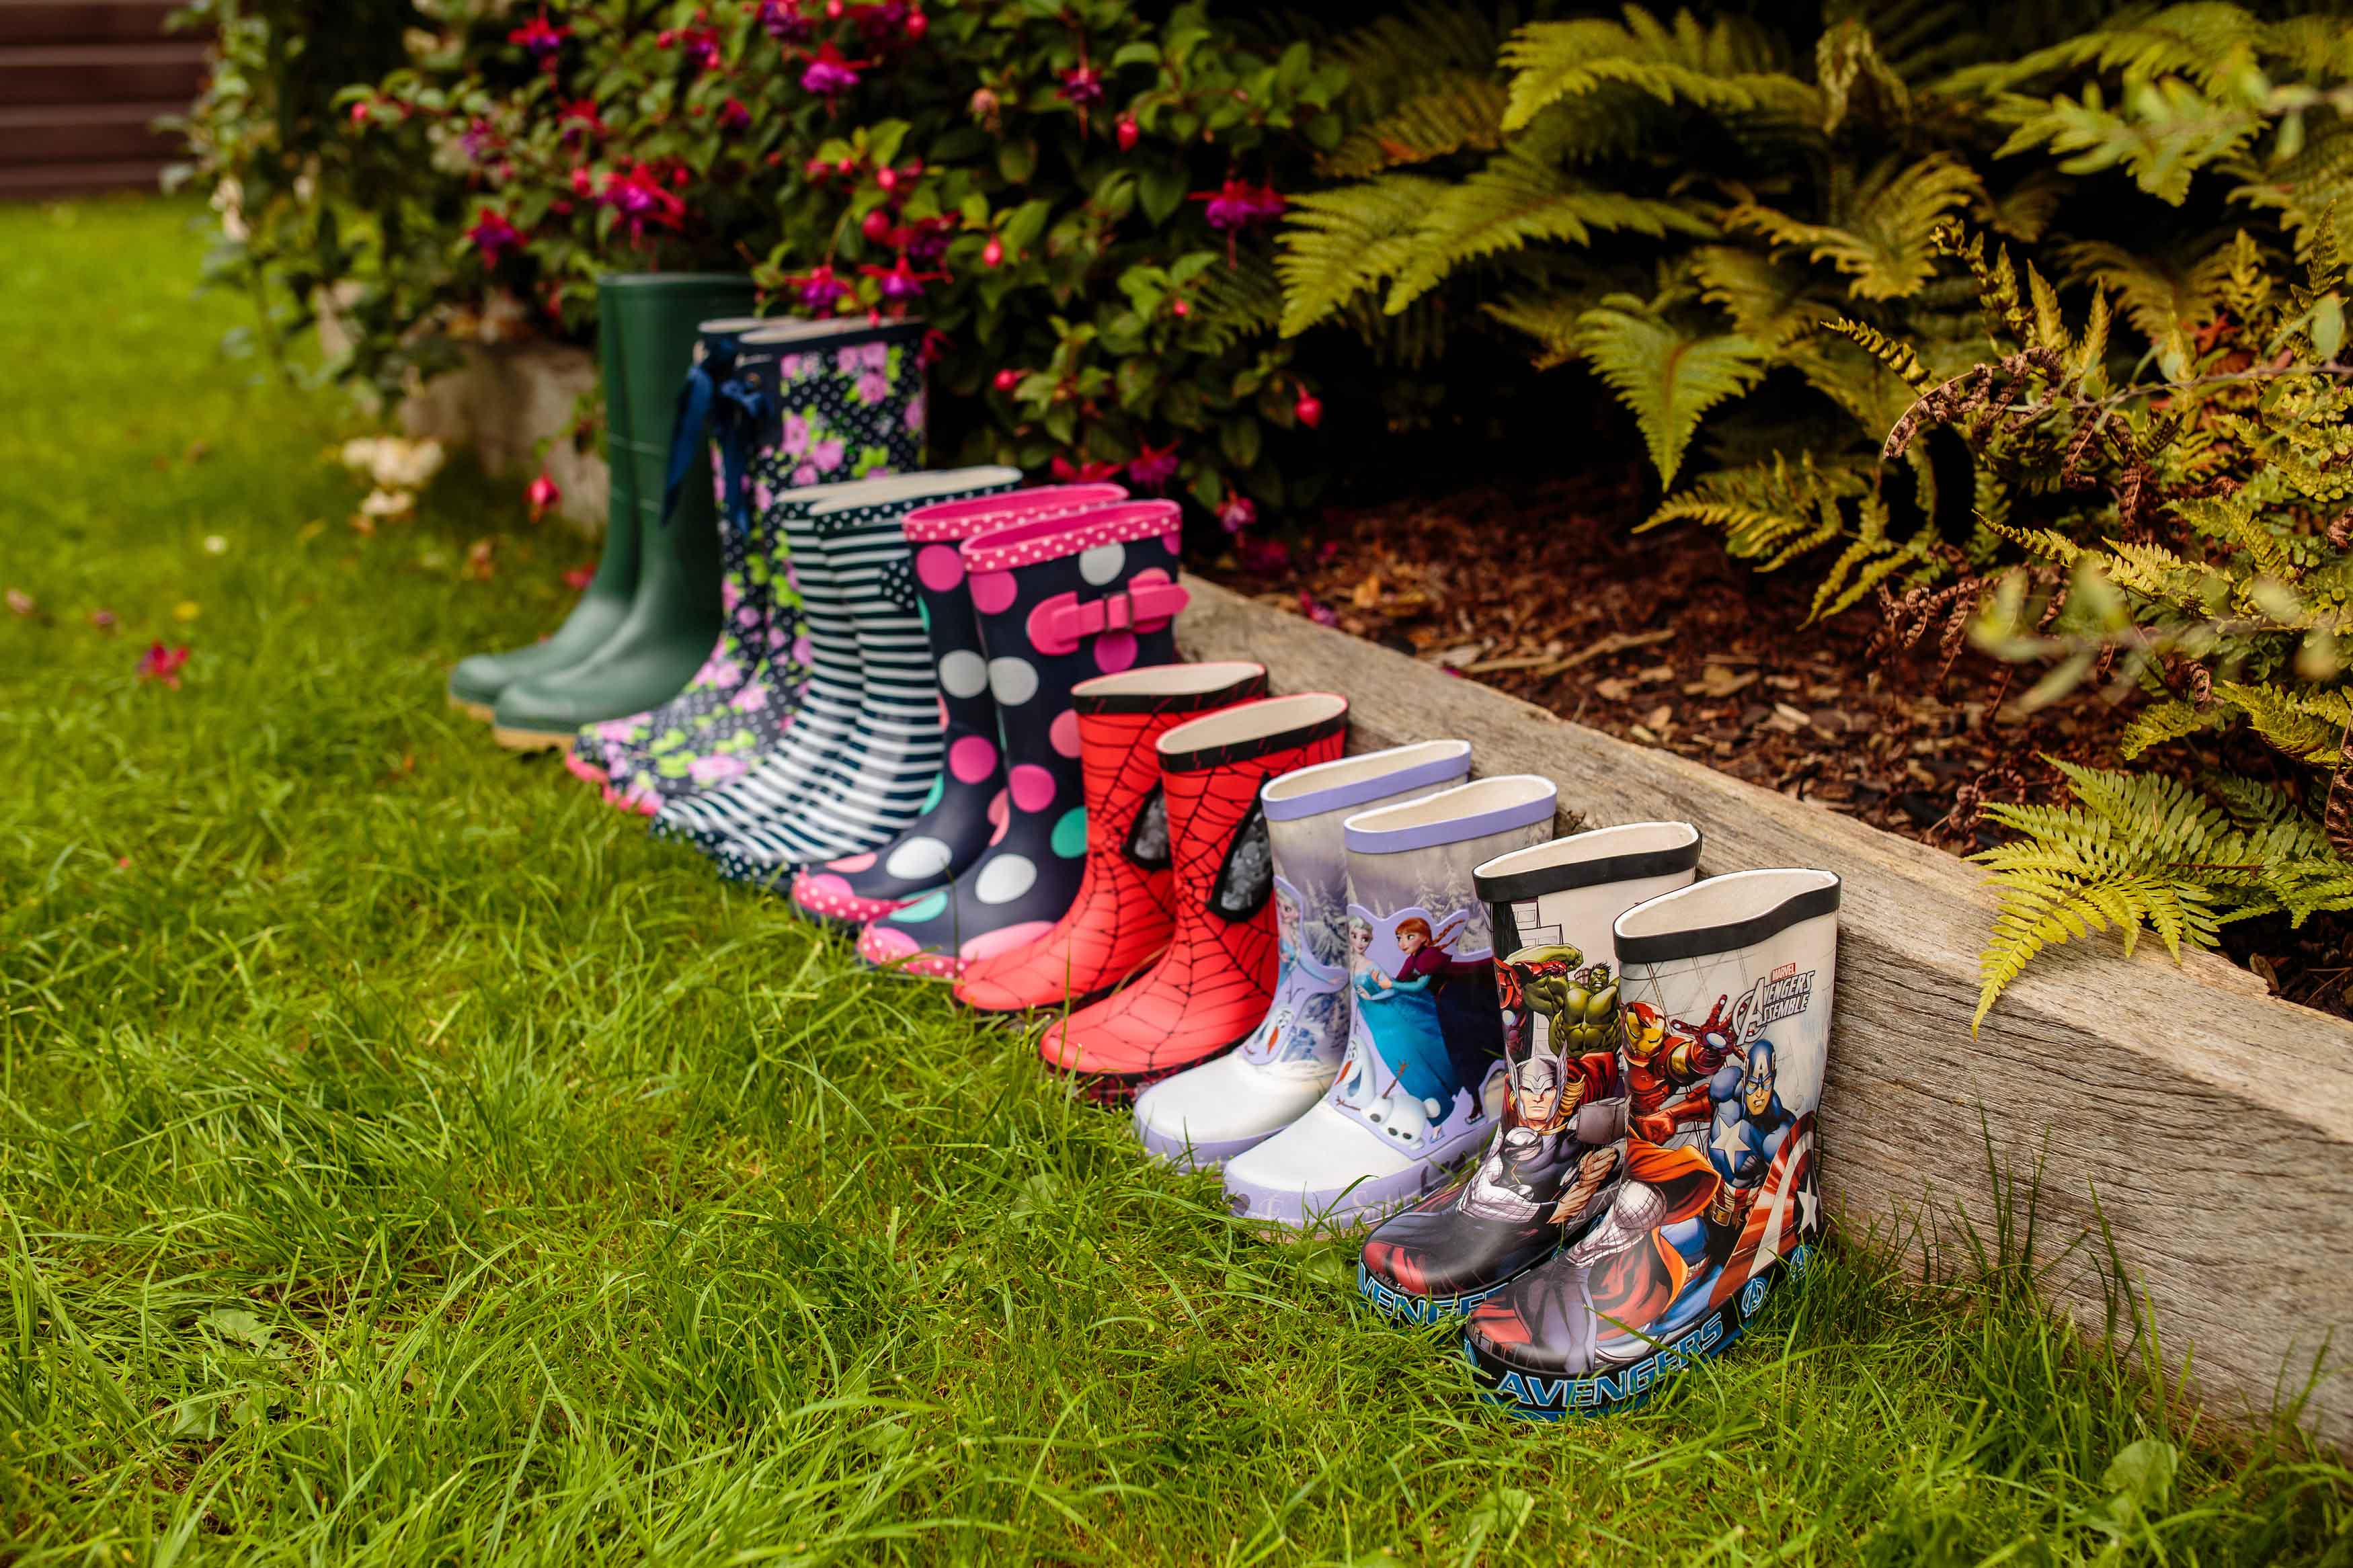 Row of colourful wellies on grass